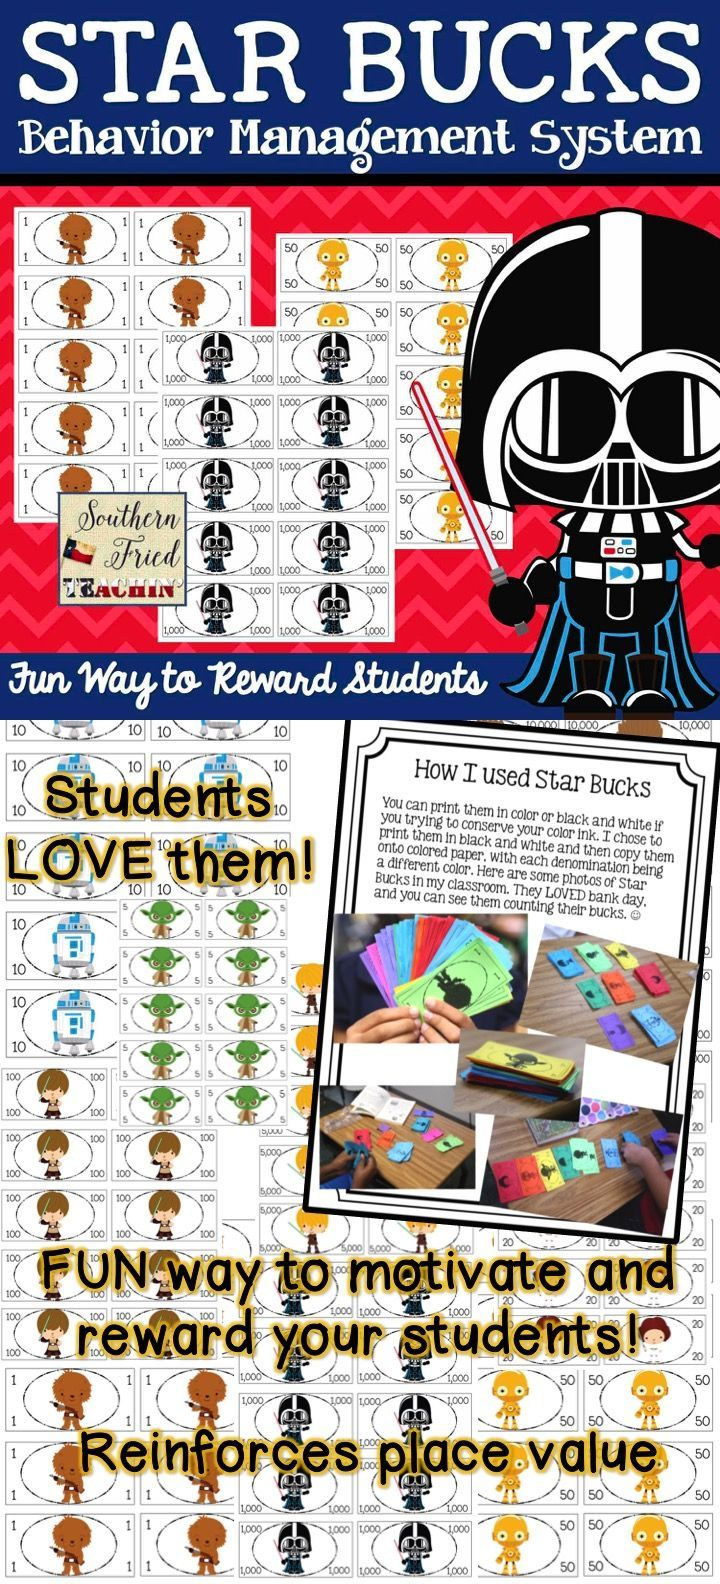 STAR Bucks are a fun way to reward your students for classroom behavior, doing homework, participation, or just about any reason to reward students. STAR Bucks have the Star Wars theme, which makes them even more fun. You can take this theme and run with it, having a STAR student bulletin board, STAR student of the week, STAR work, etc. The ideas are limitless! From $1 to $10,000 bills. My students LOVED them!! #classroommoney #classroomeconomy #starbucks